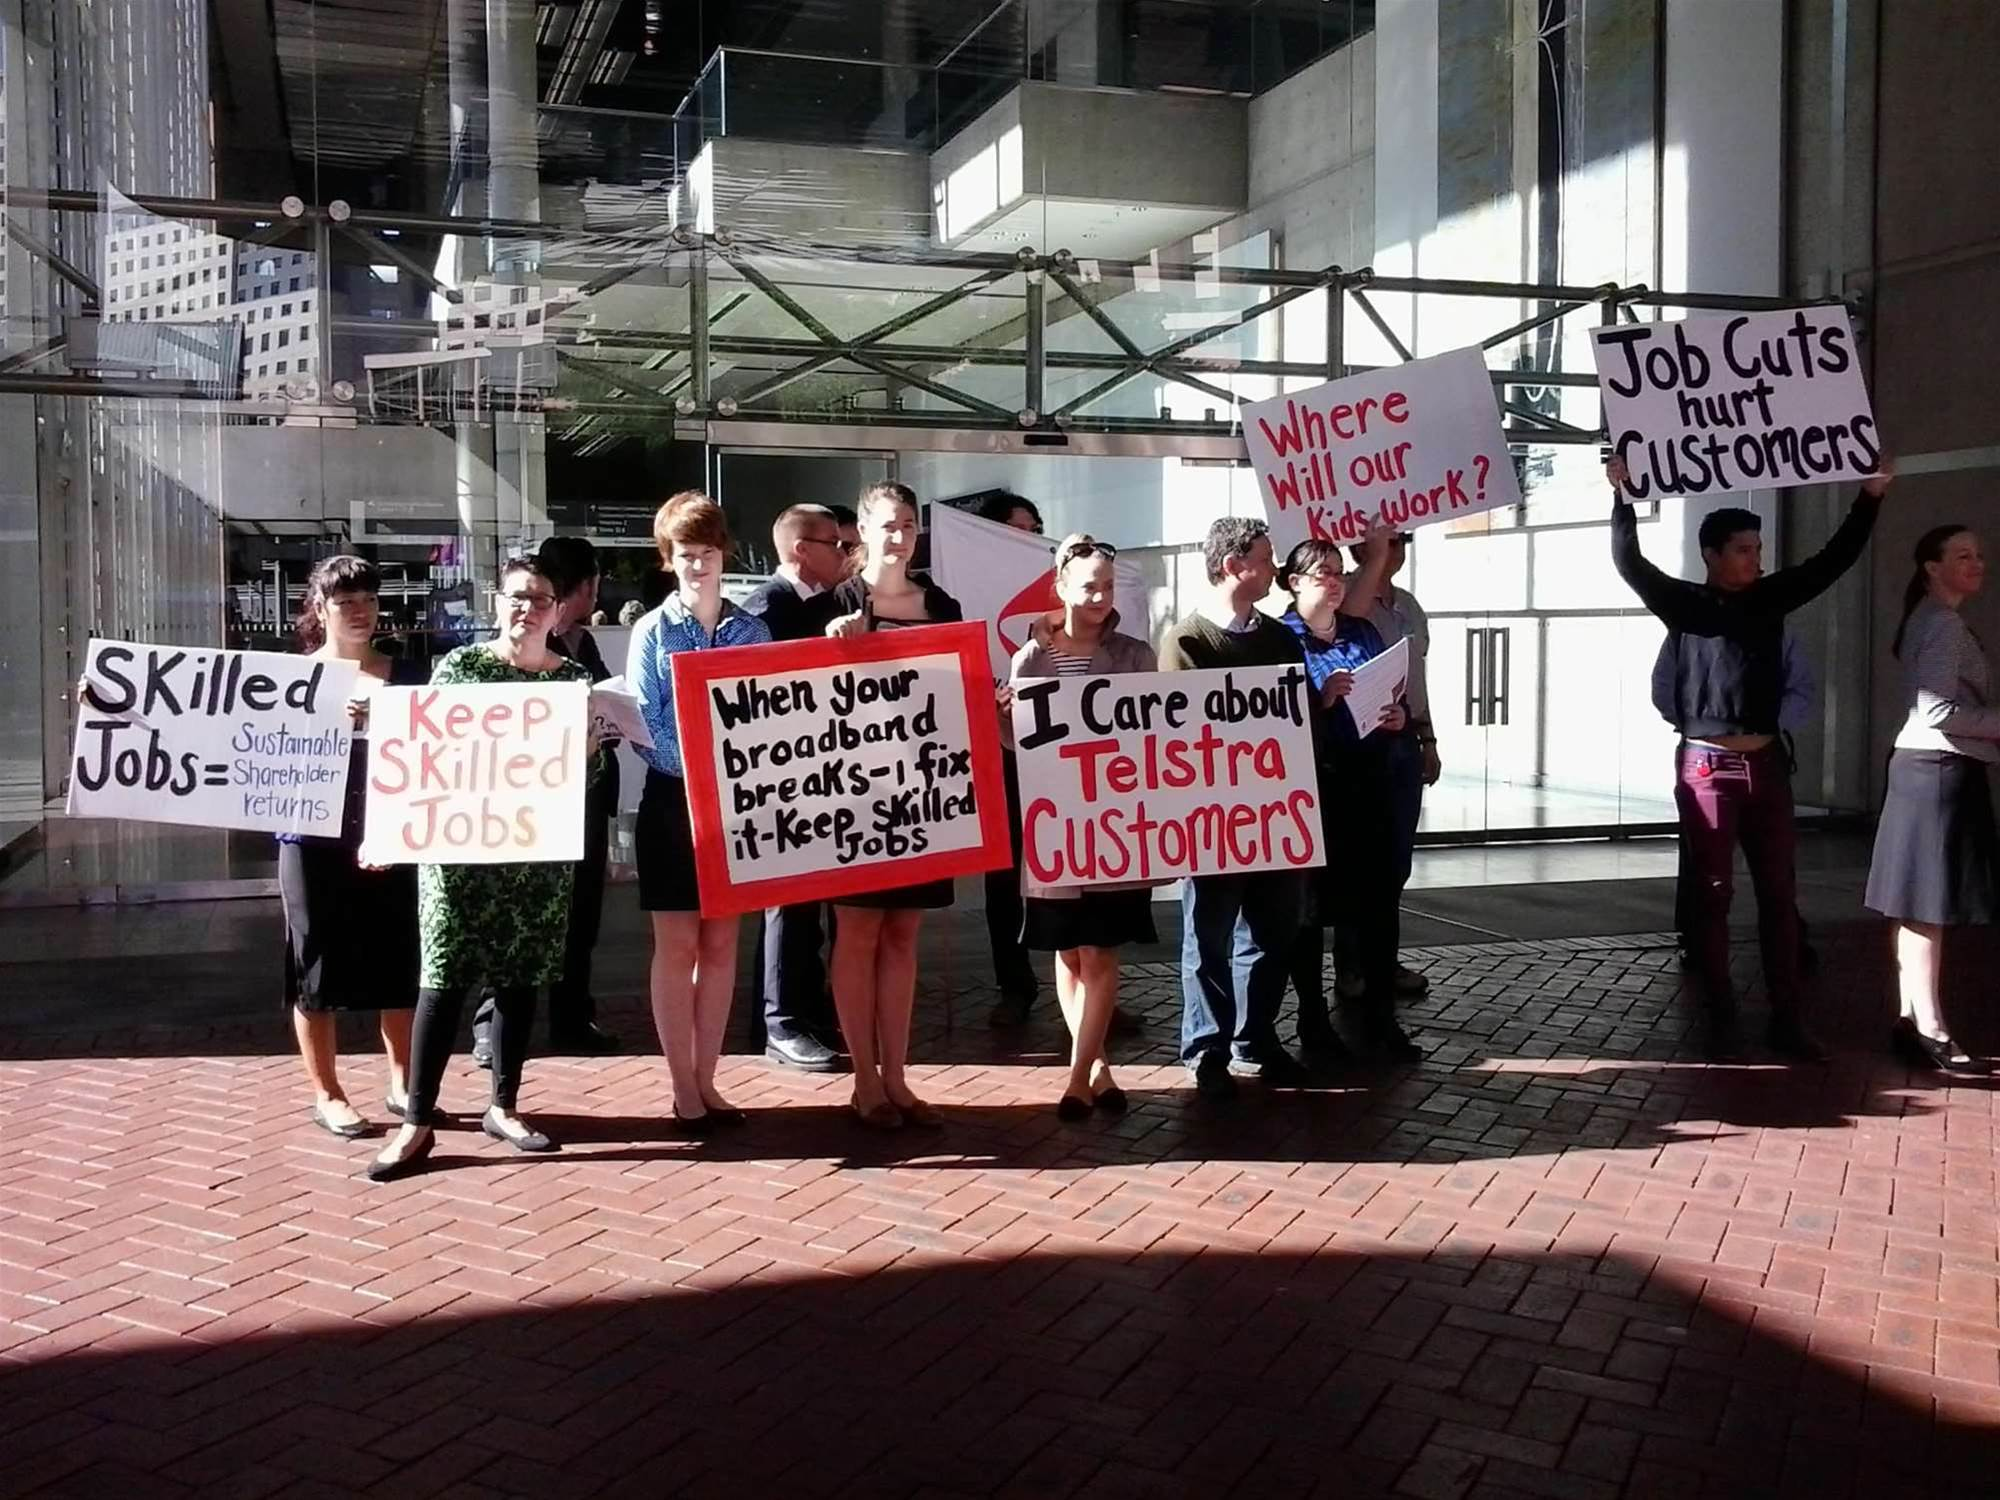 Photos: CPSU highlights Telstra job cuts